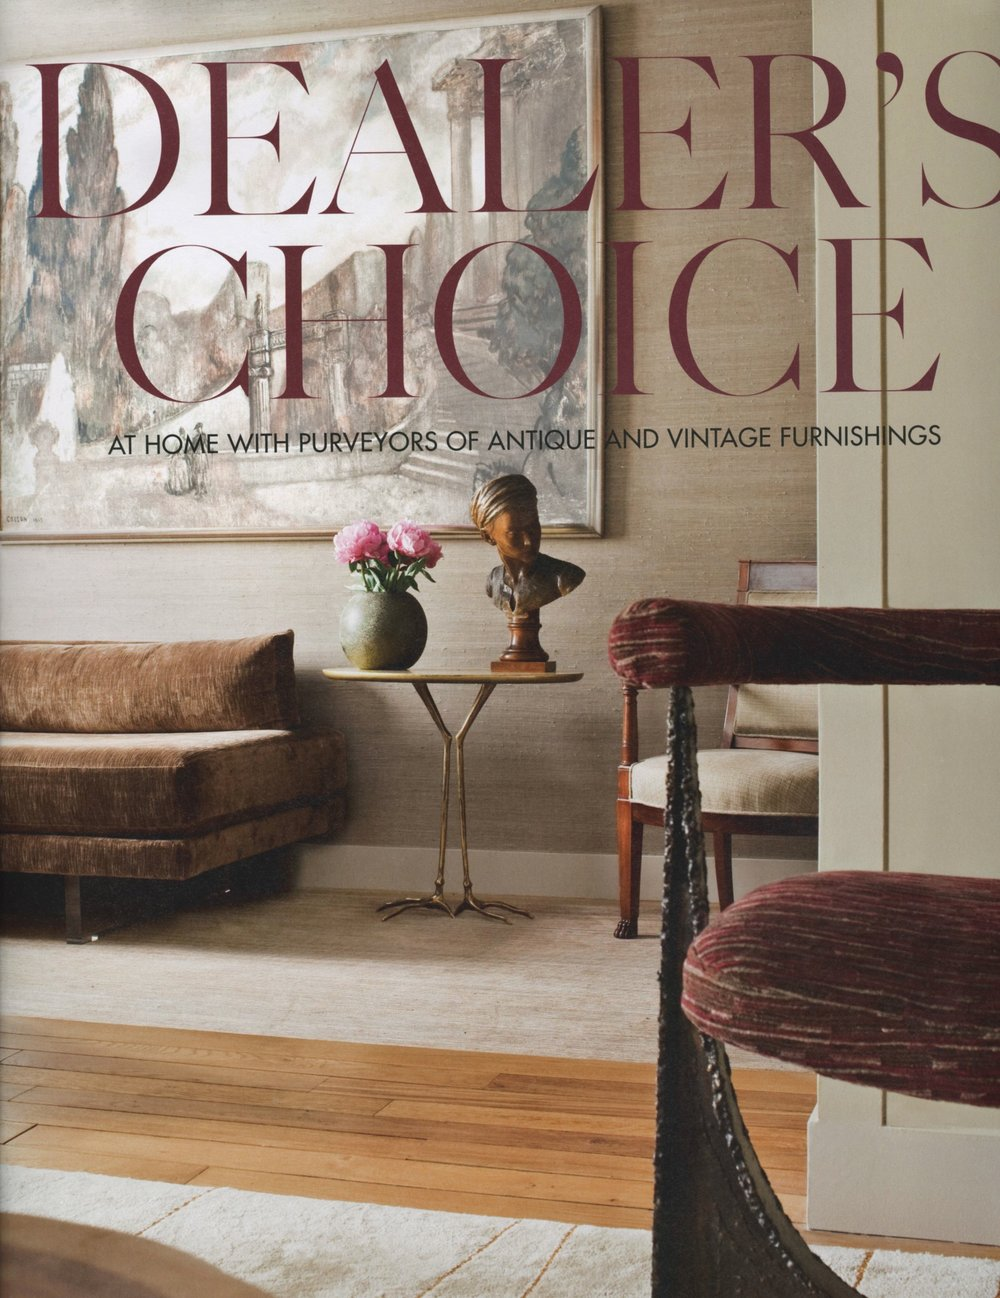 Weinberg Modern, Dealer's Choice